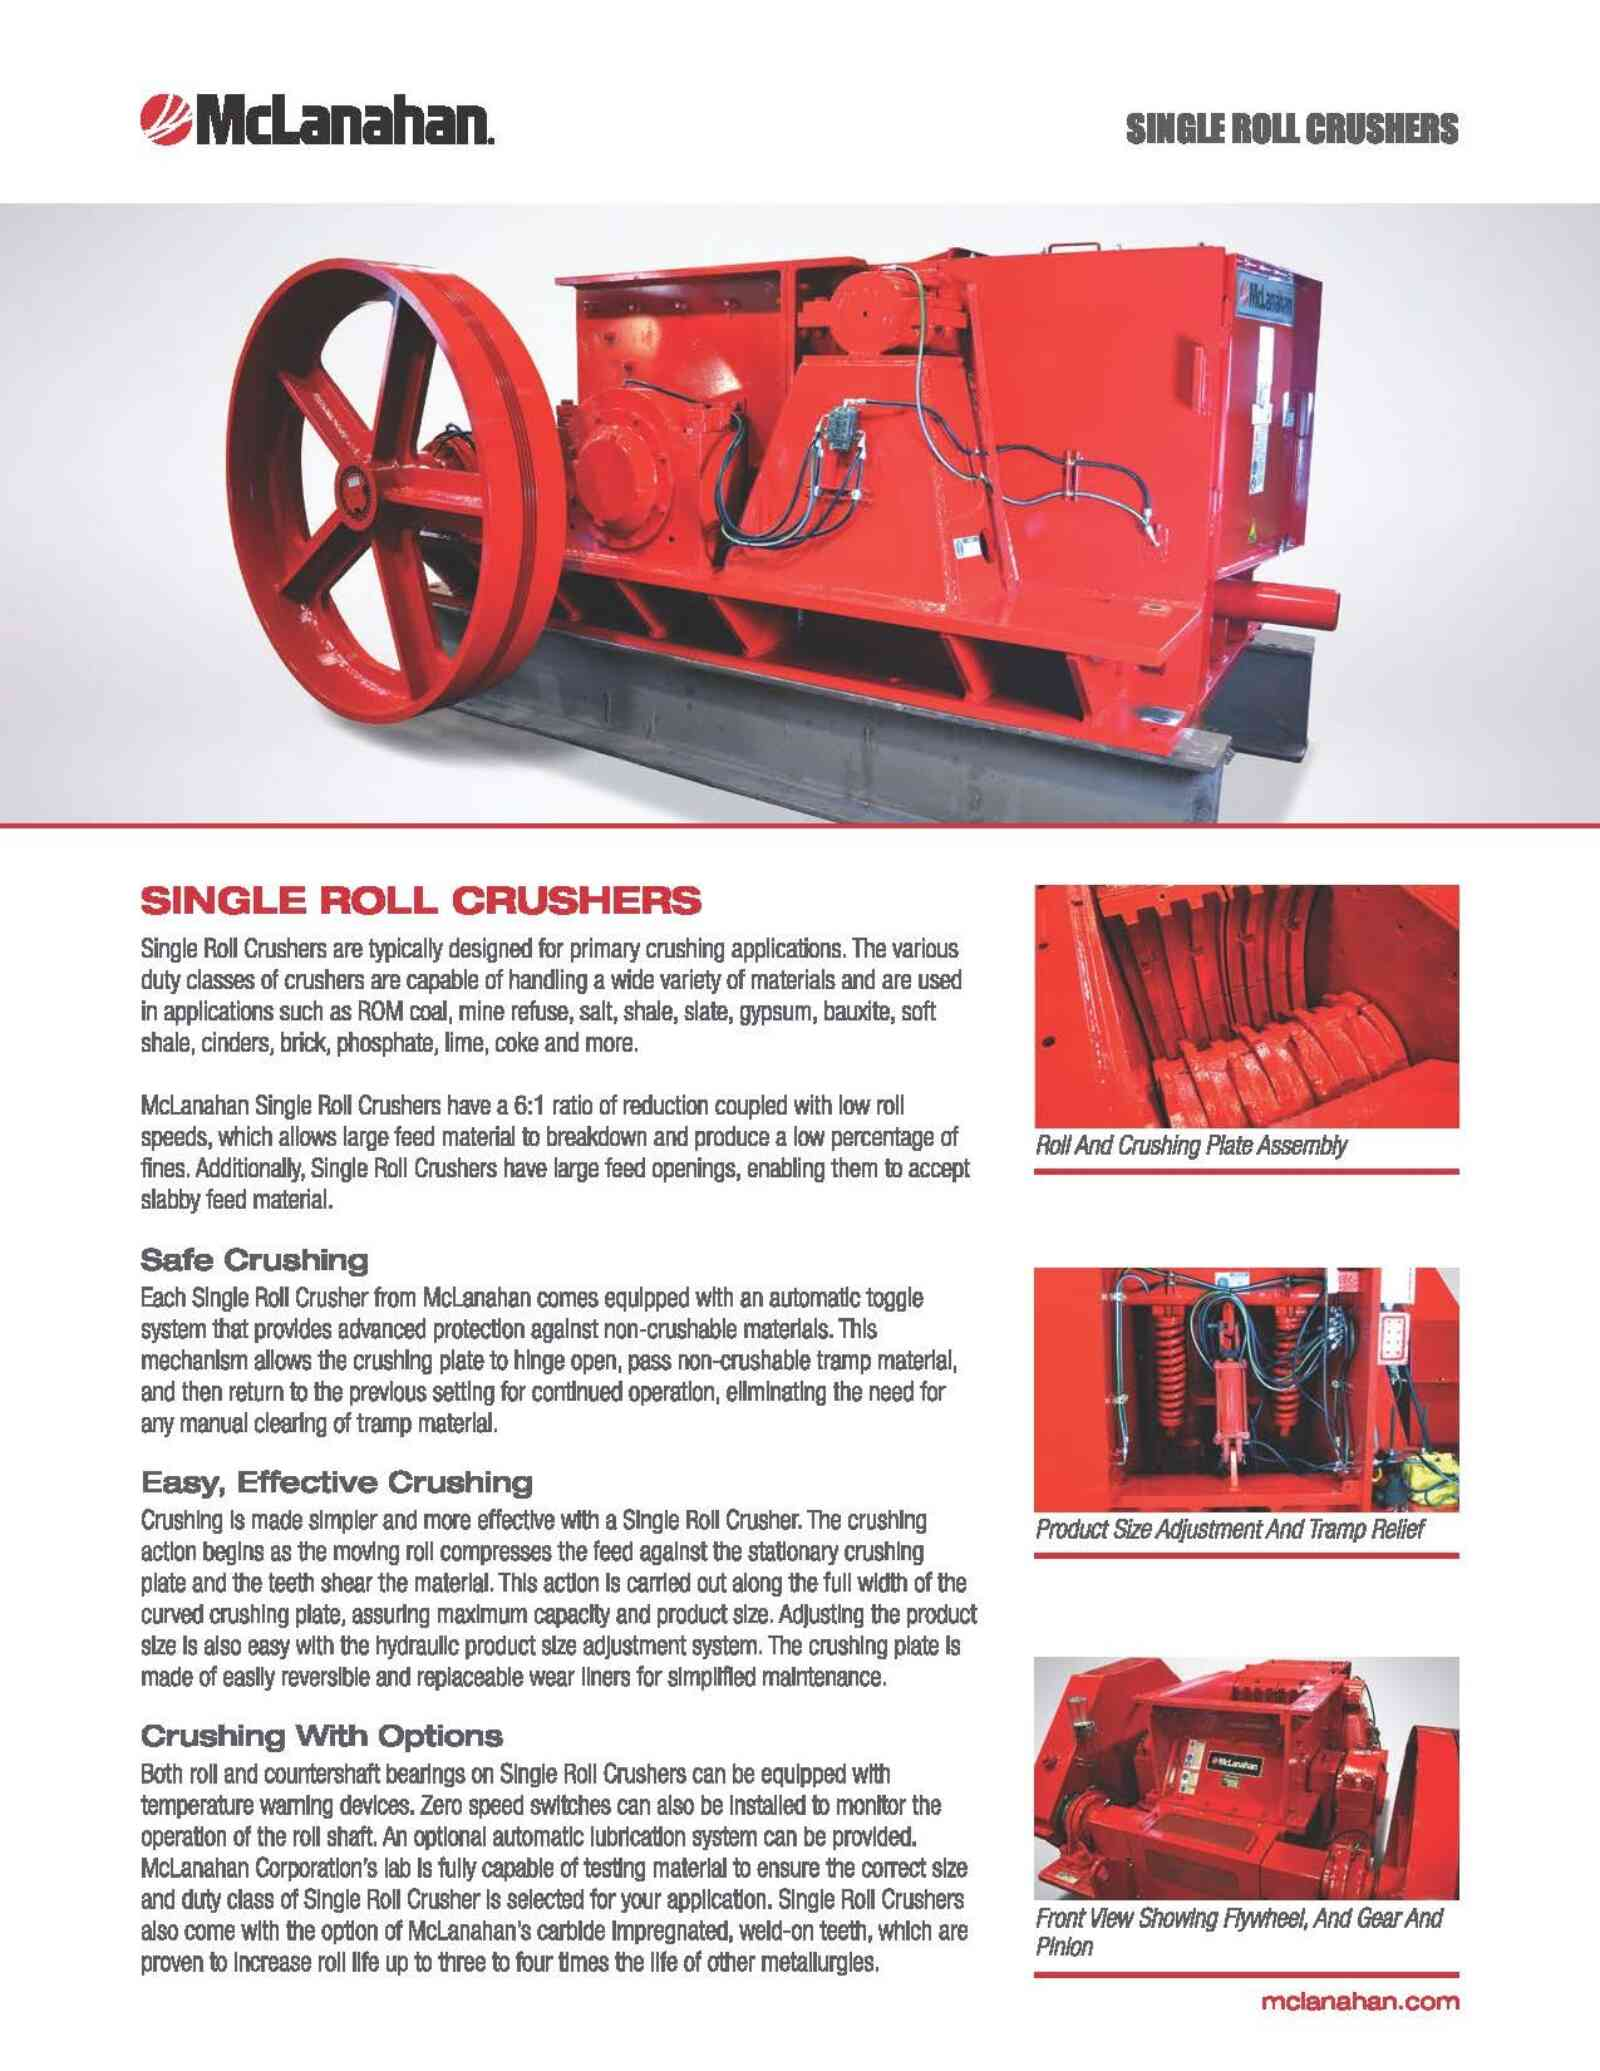 Single Roll Crusher Brochure Image Page 1 Page 1